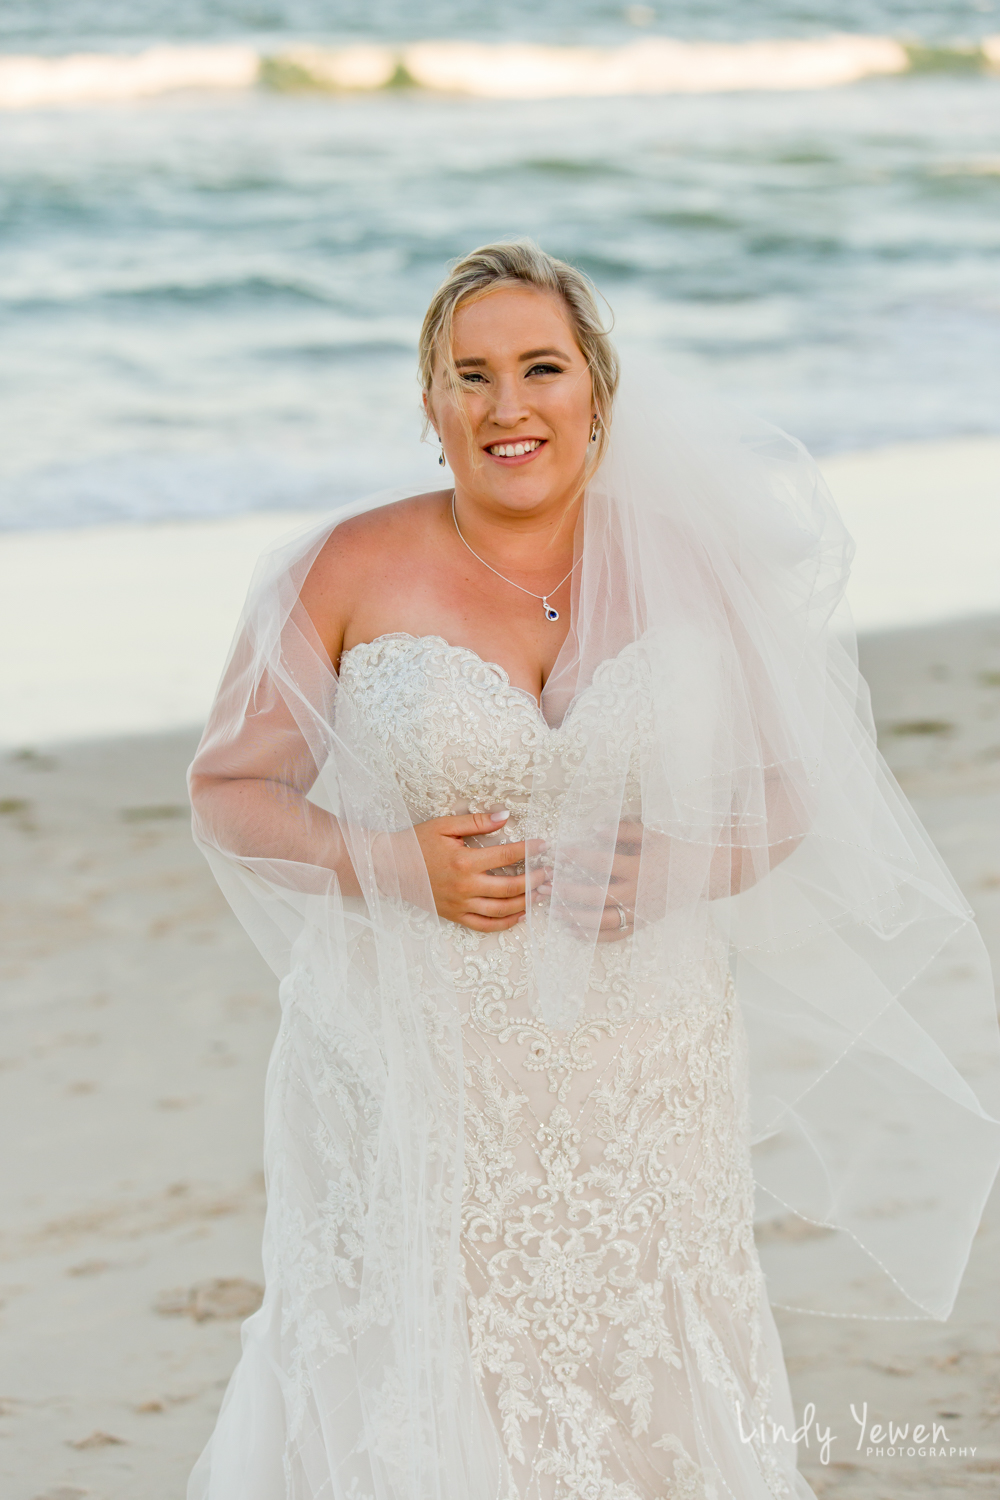 Bribie-Island-wedding-photographer-Chloe-Adam 627.jpg